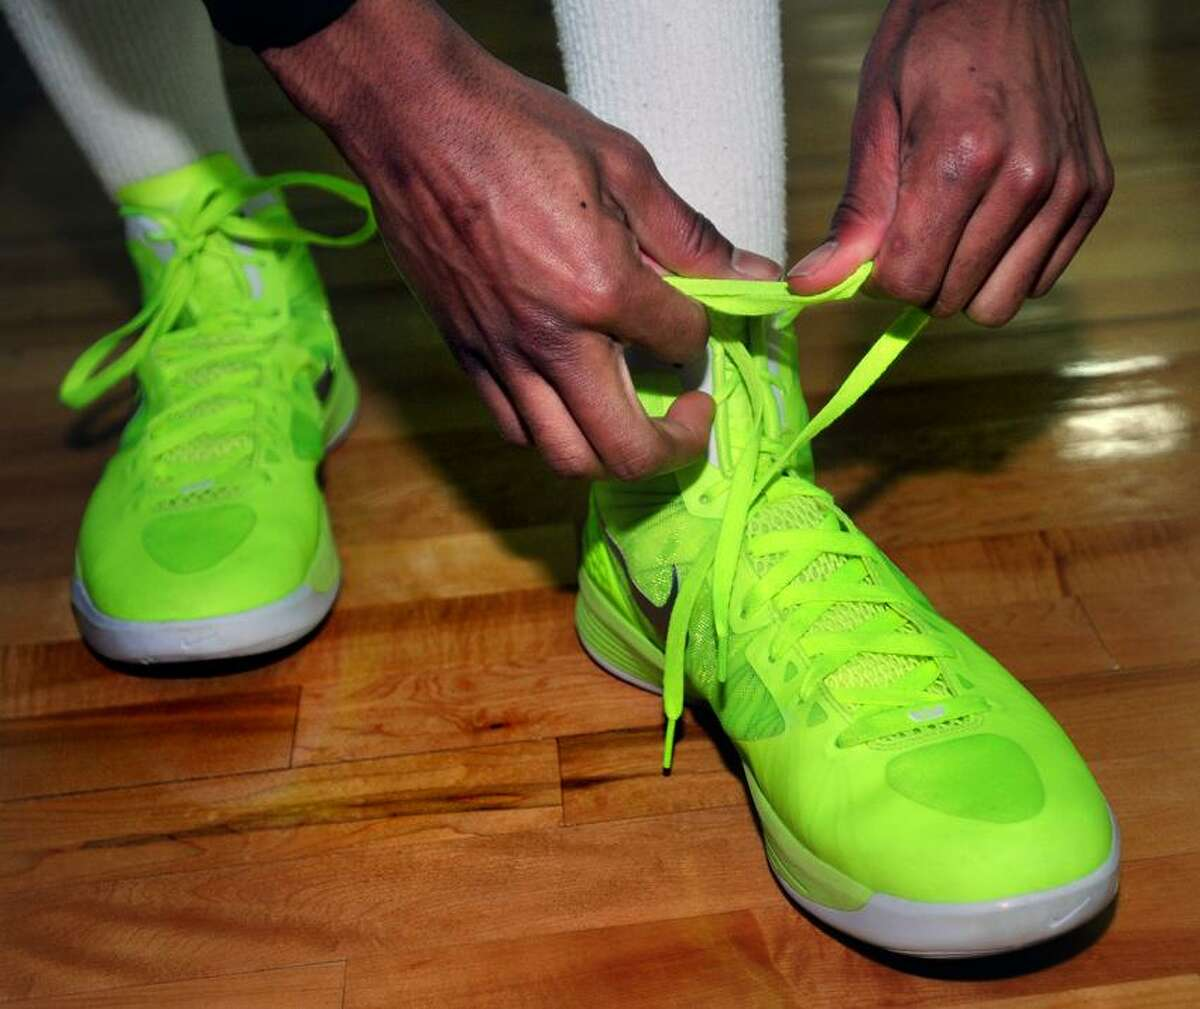 B.J. Davis of Hamden Hall laces his neon shoes for basketball practice at the Beckerman Athletic Center in Hamden on 1/20/2012.Photo by Arnold Gold/New Haven Register AG0436A